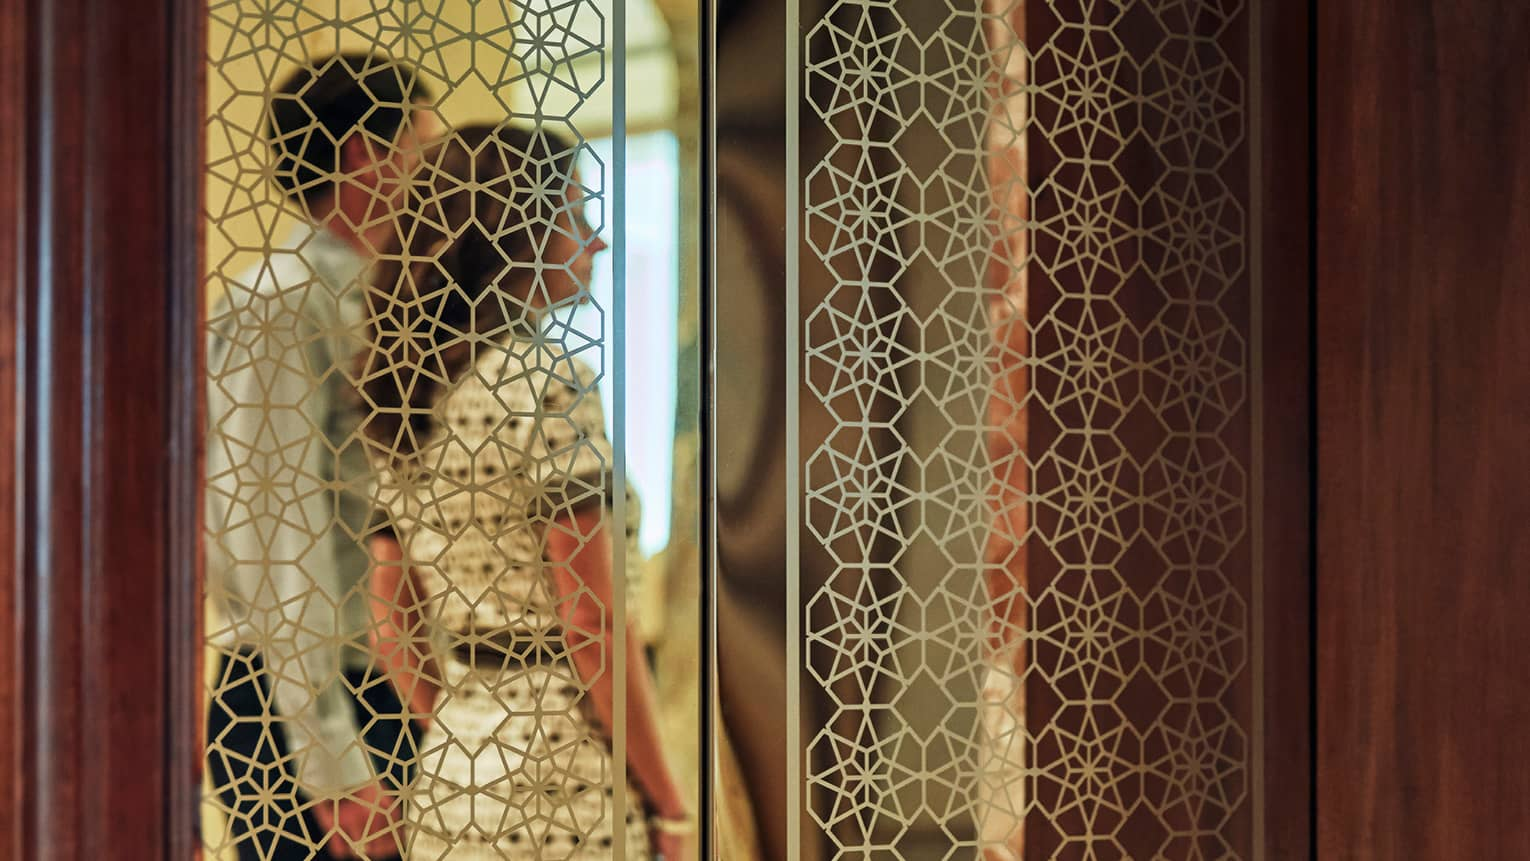 Couple behind screen with intricate gold geometric patterns, traditional Arabic design